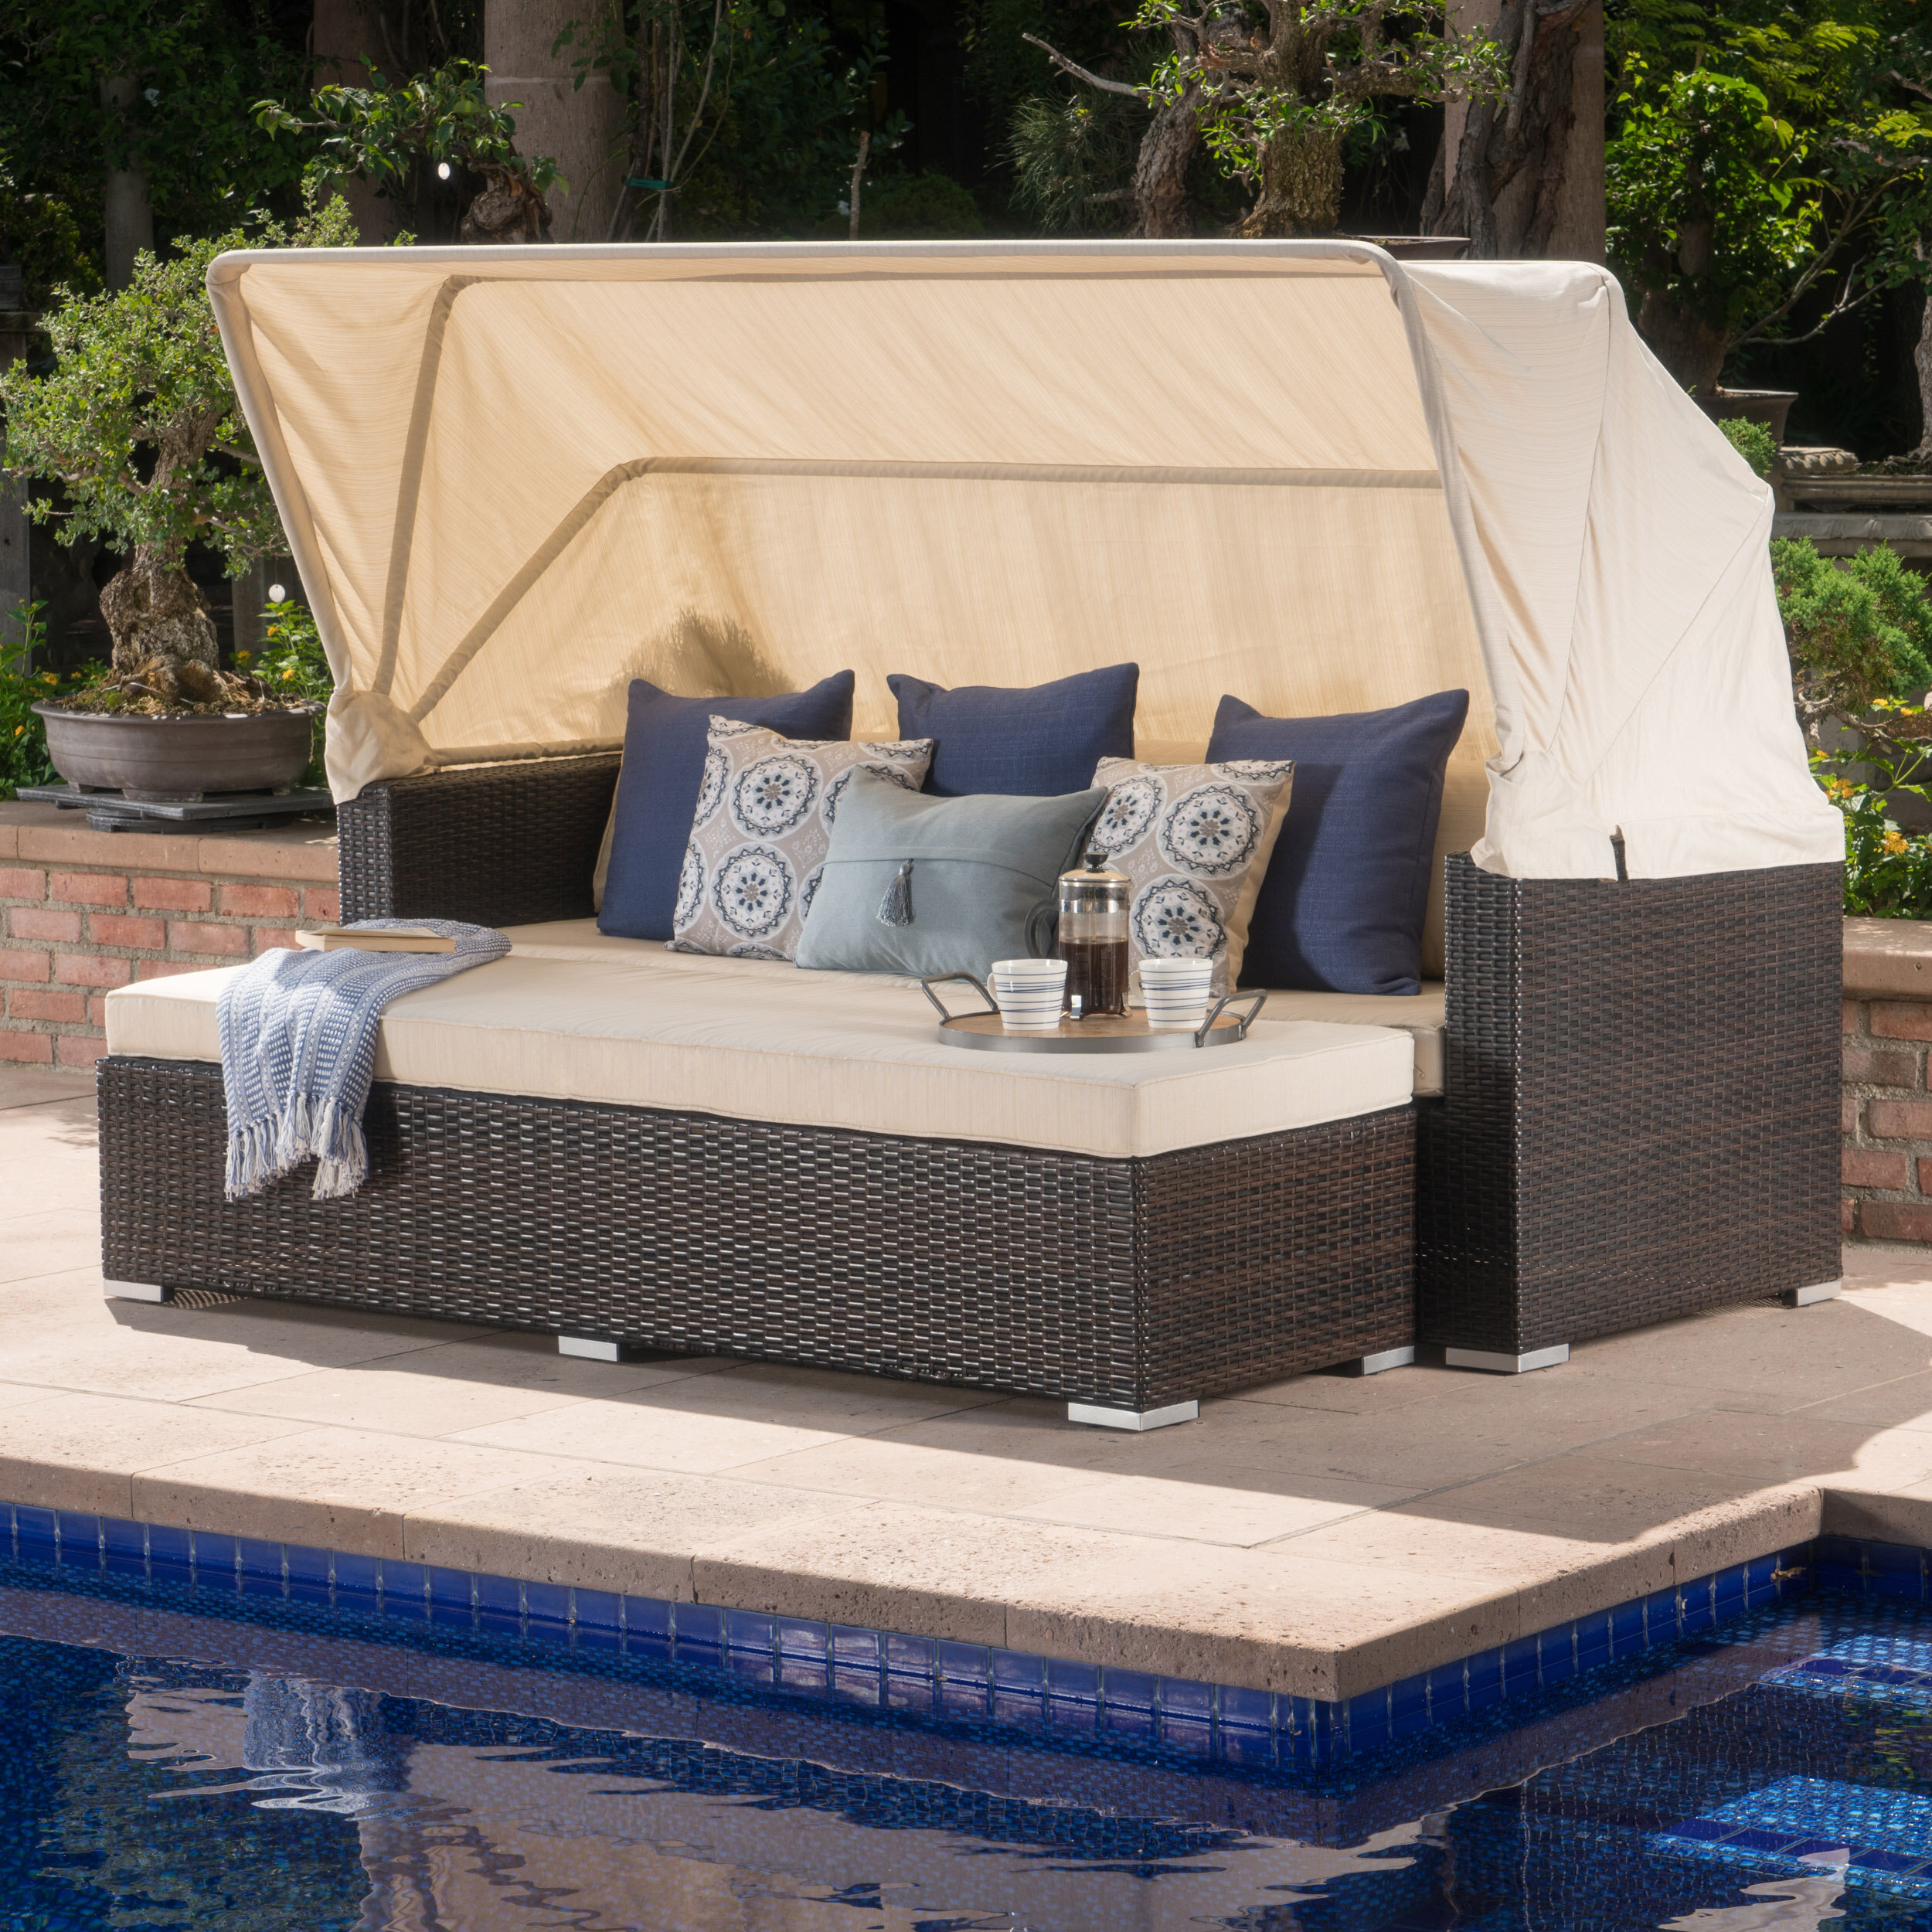 decoration daybed diy best with nsyd bed trends patio uncategorized and for outdoor canopy styles backyard home